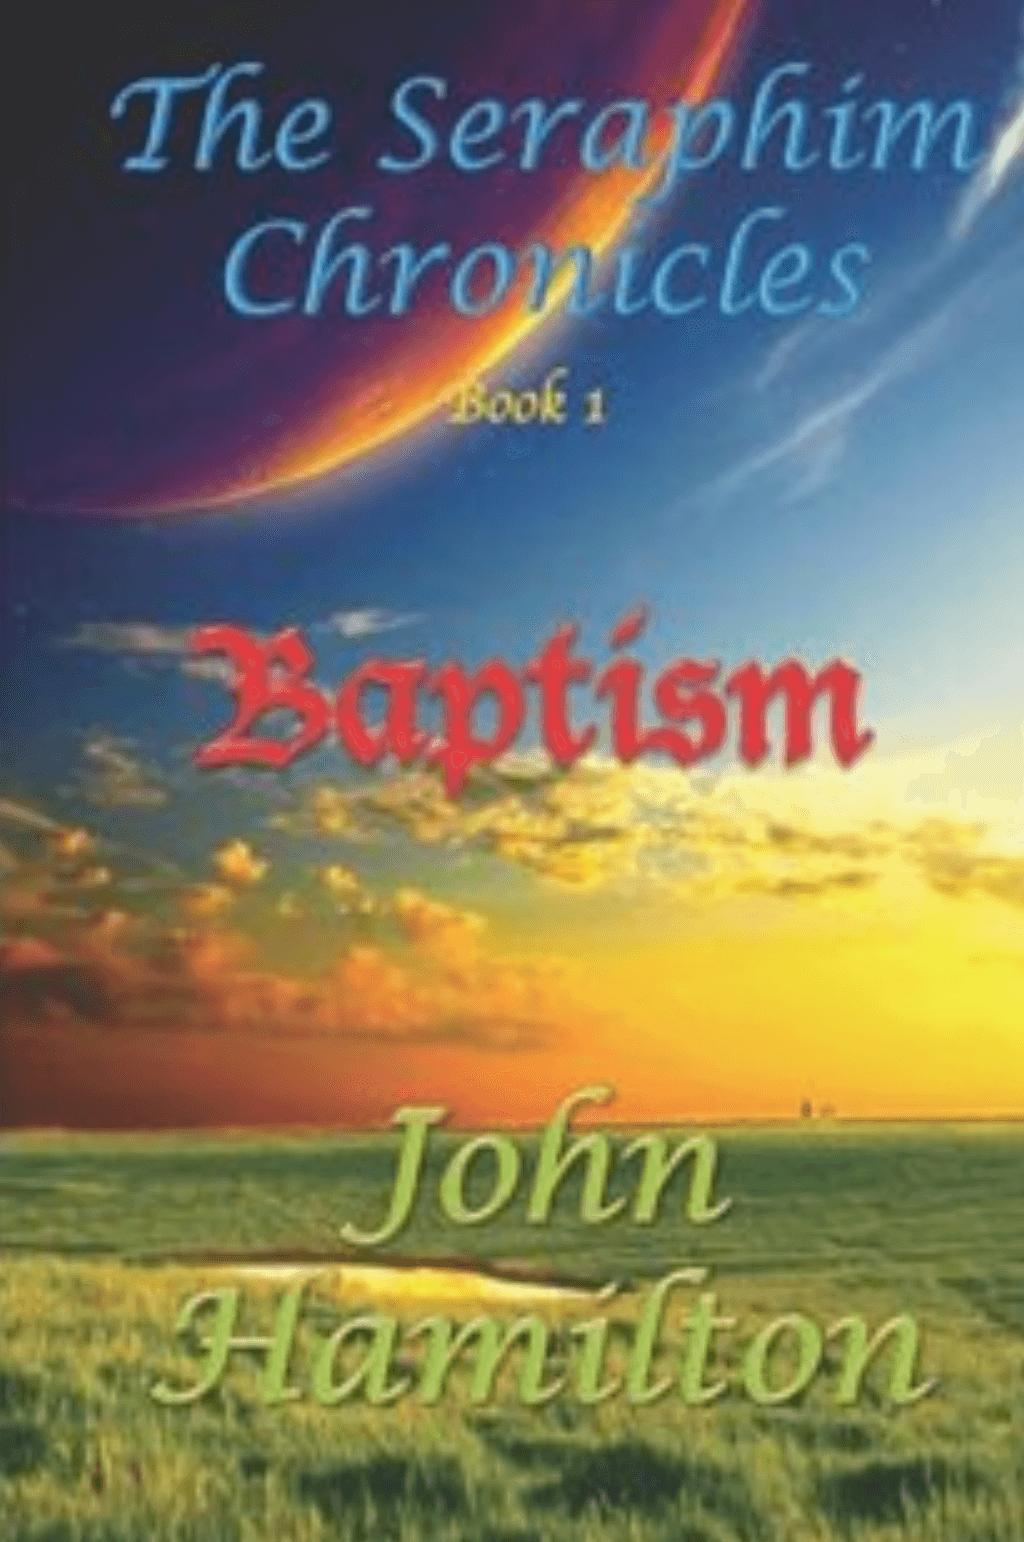 The Seraphim Chronicles - Baptism